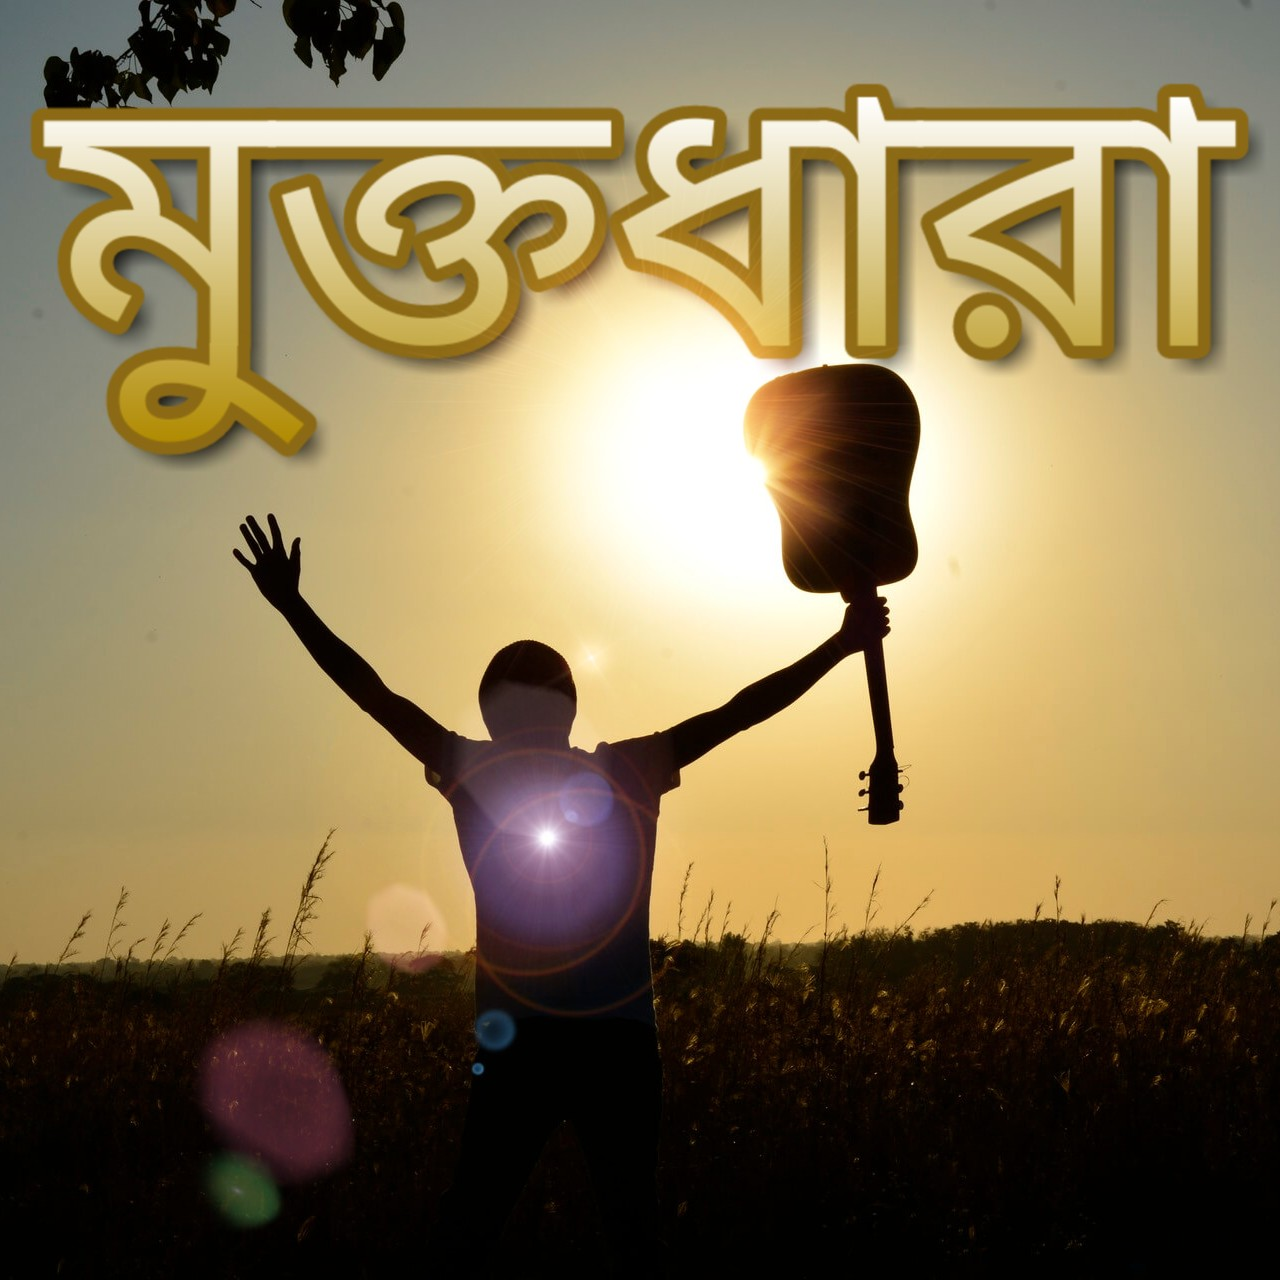 Muktodhara-  A huge Collection of Creative Bengali Poem, Dialects, Quotes